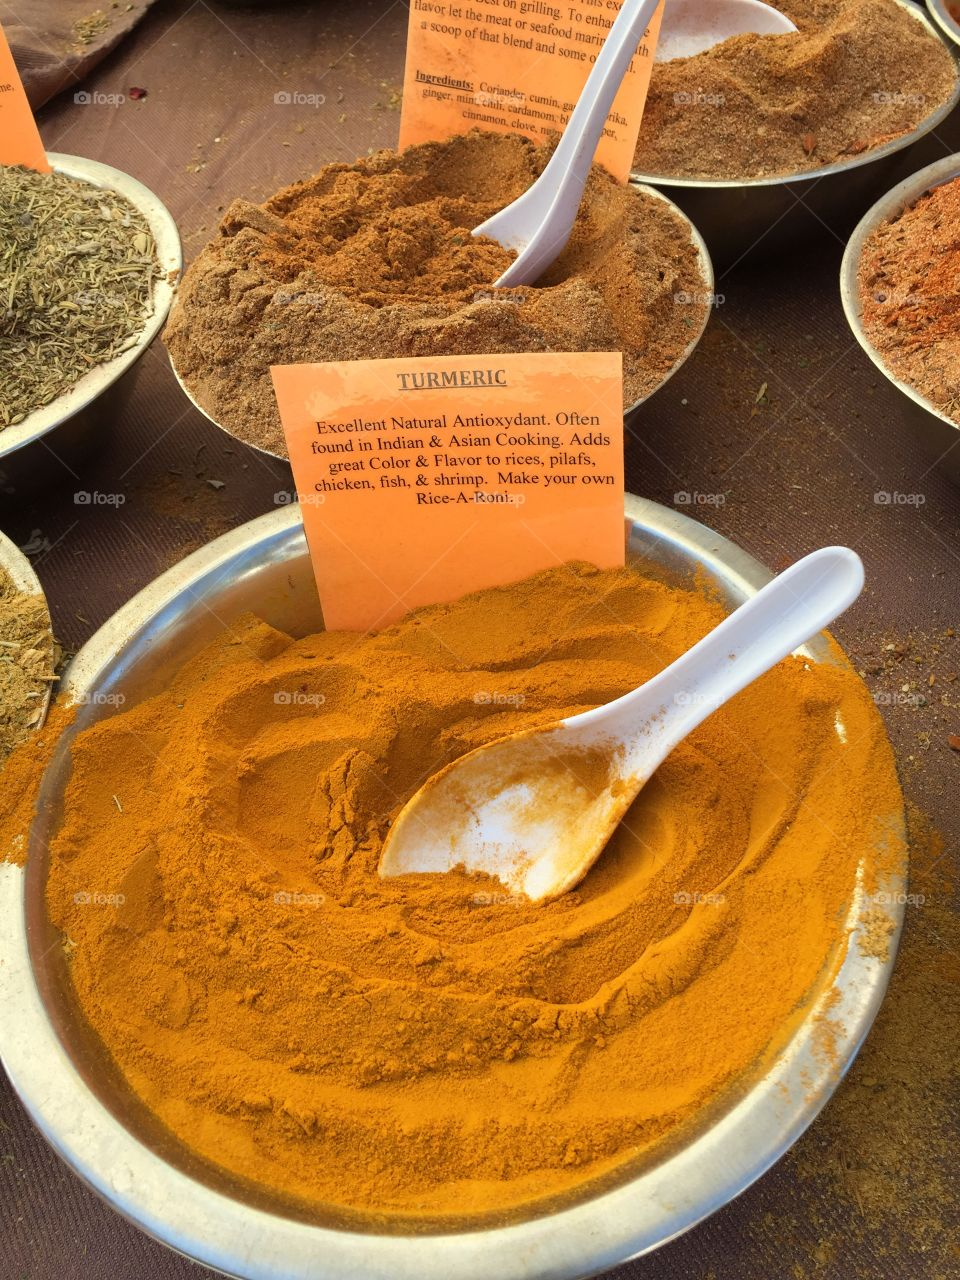 Shopping for spices, turmeric.